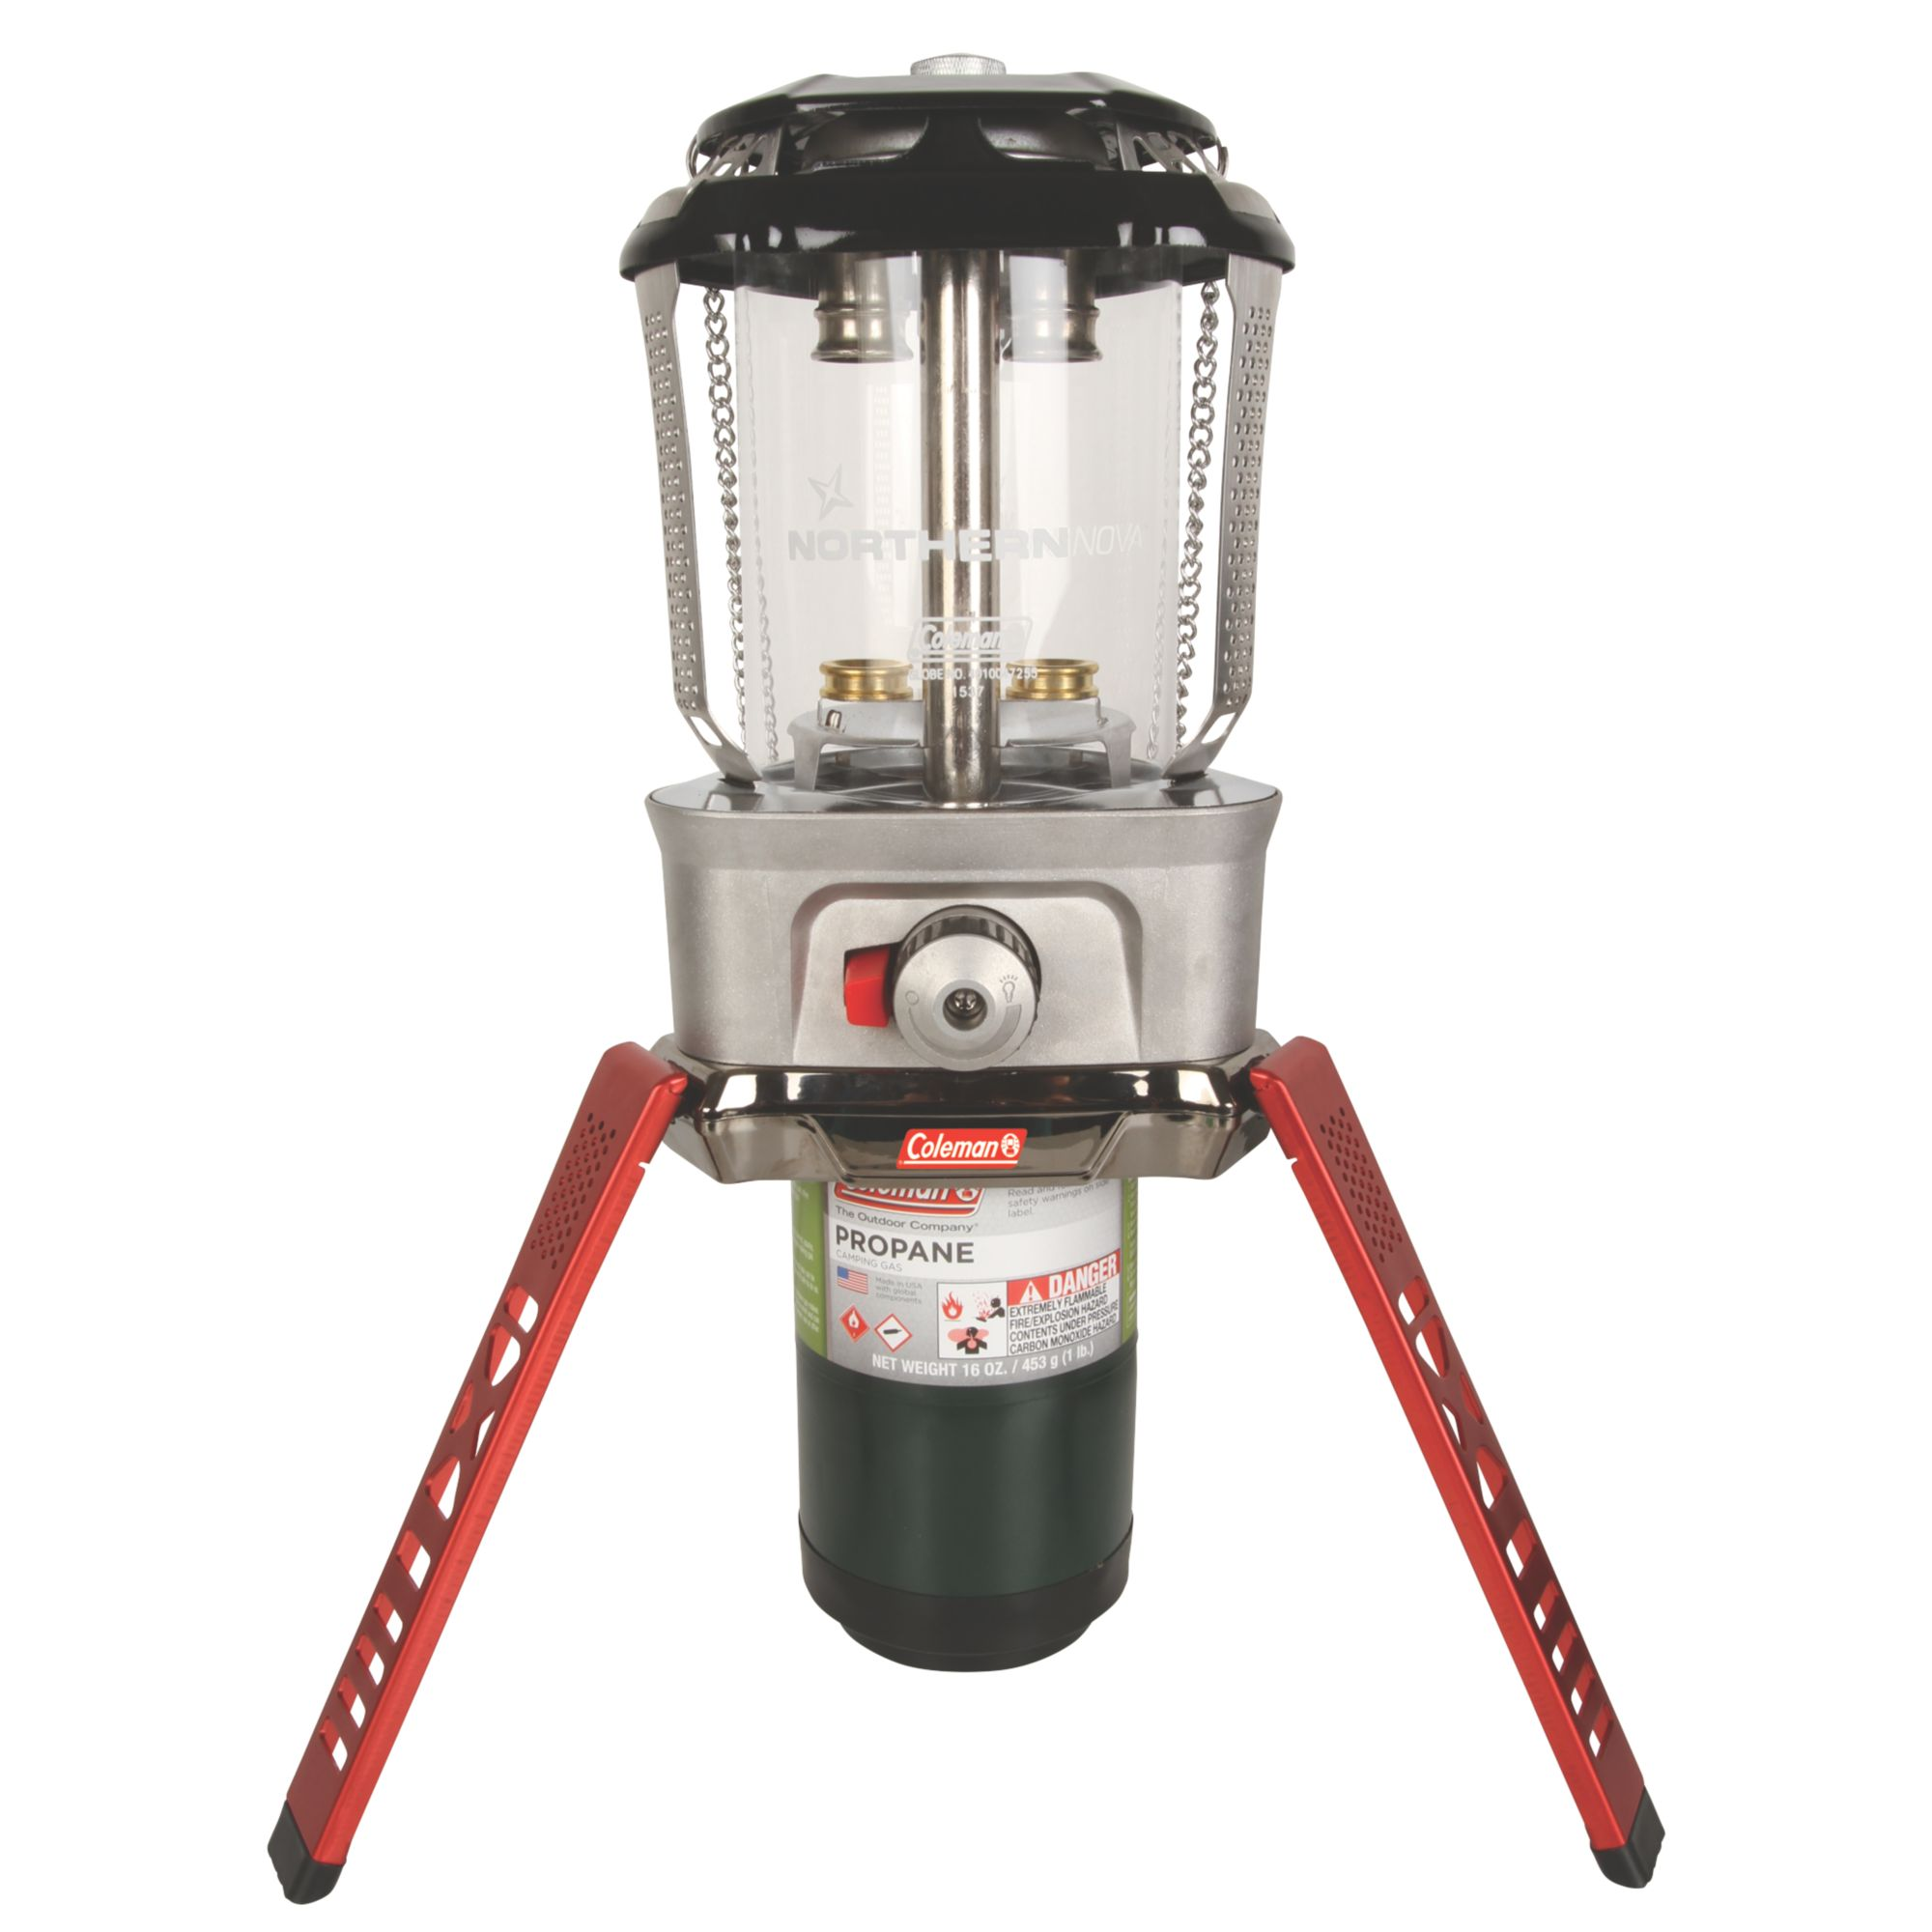 Northern Nova™ Propane Lantern with Case | Coleman